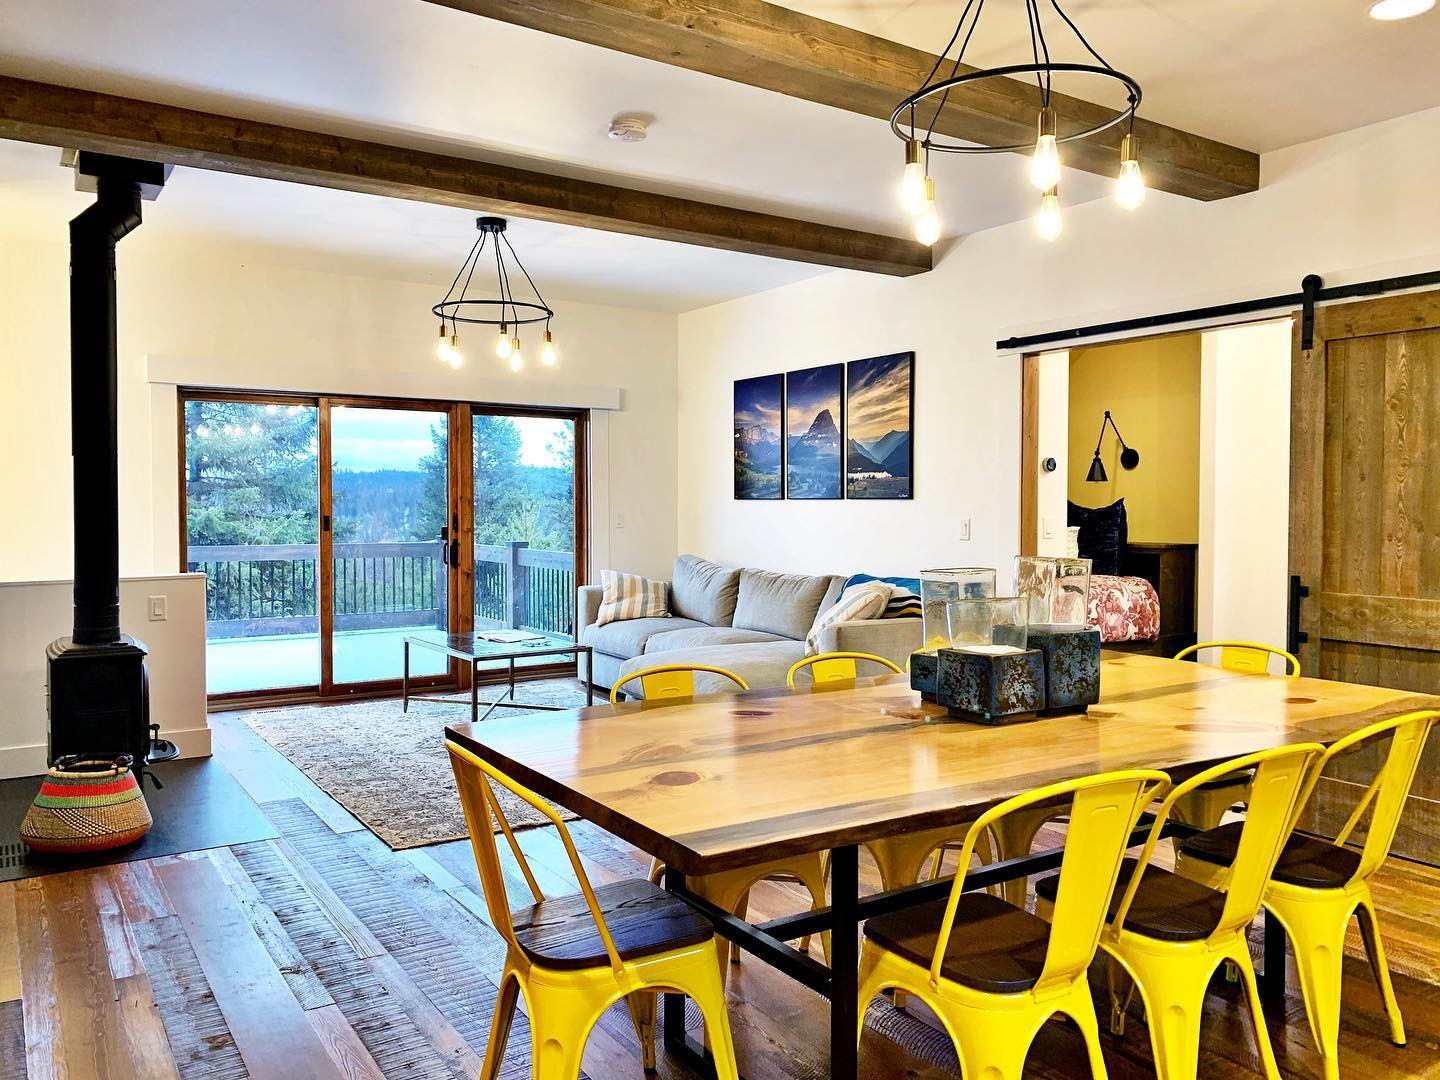 Those yellow chairs seem like even a better idea right now! Color pop! whitefish custom home builder